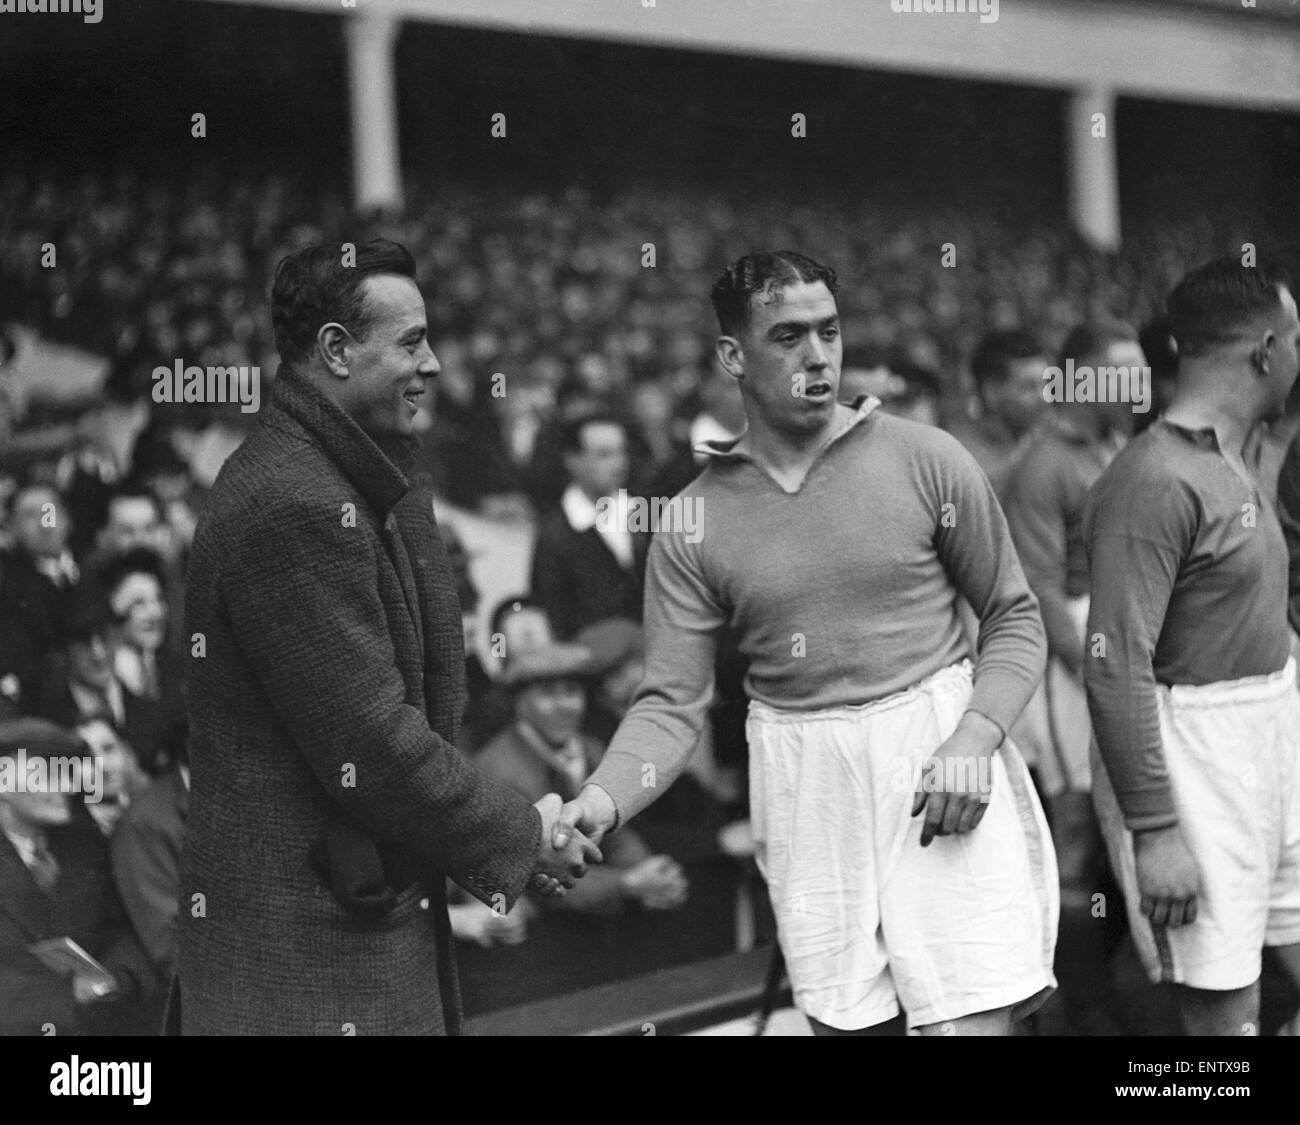 Dixie Dean the legendary Everton centre forward being introduced